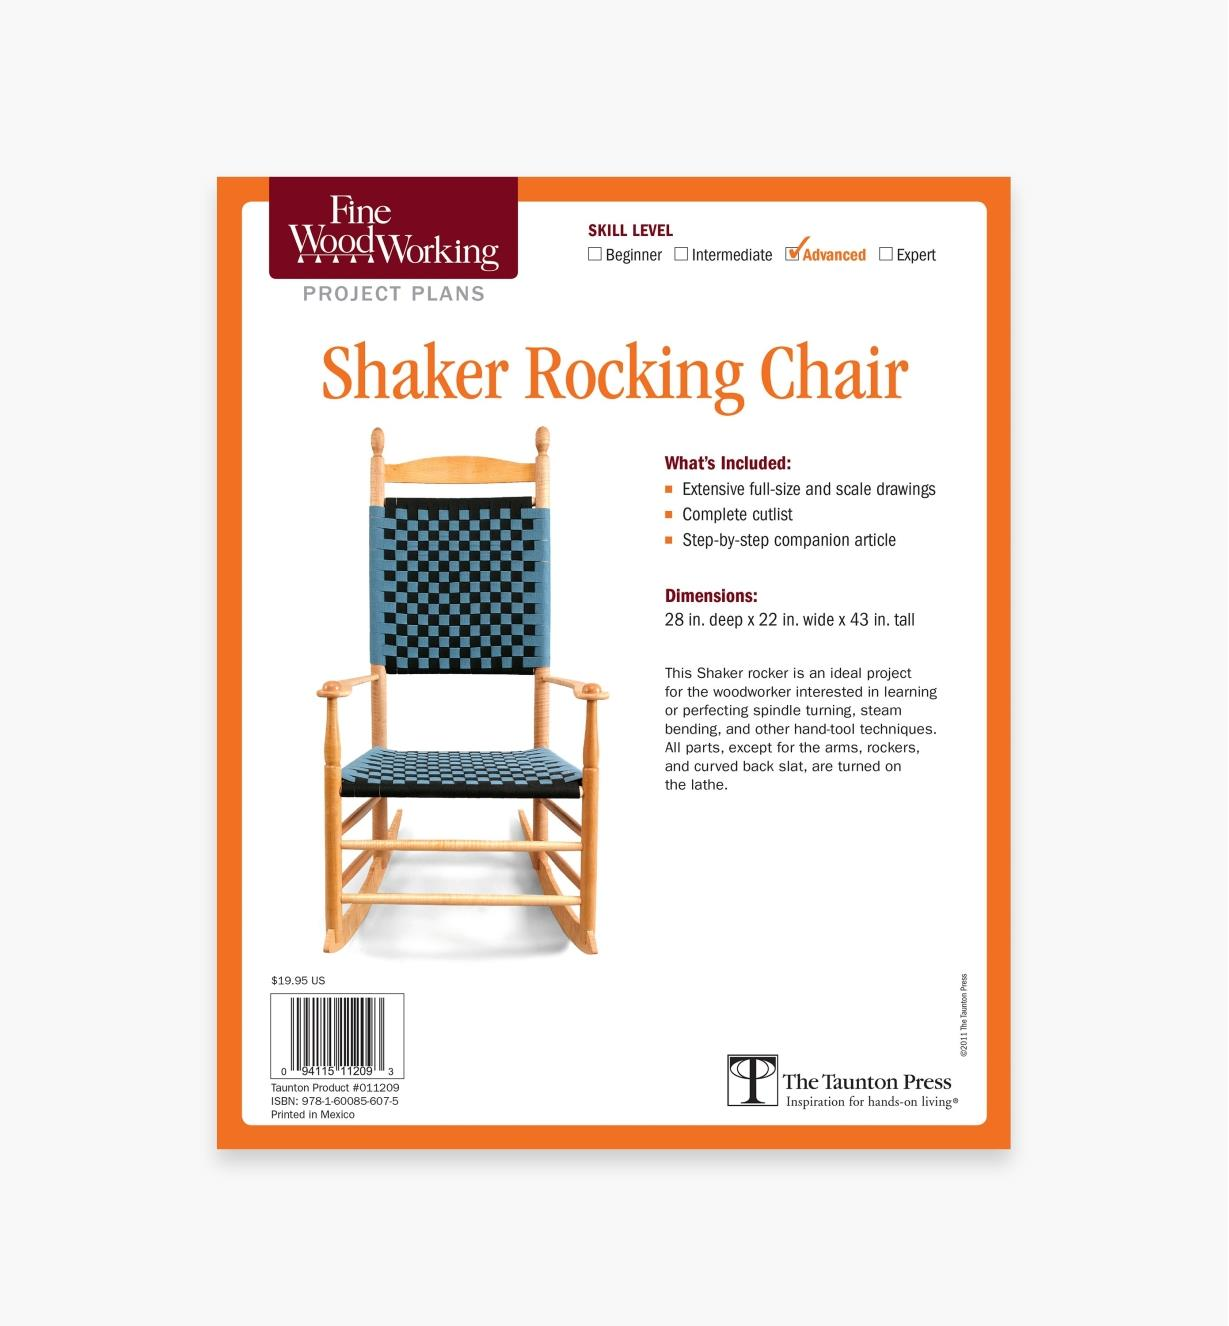 73L2536 - Shaker Rocking Chair Plan